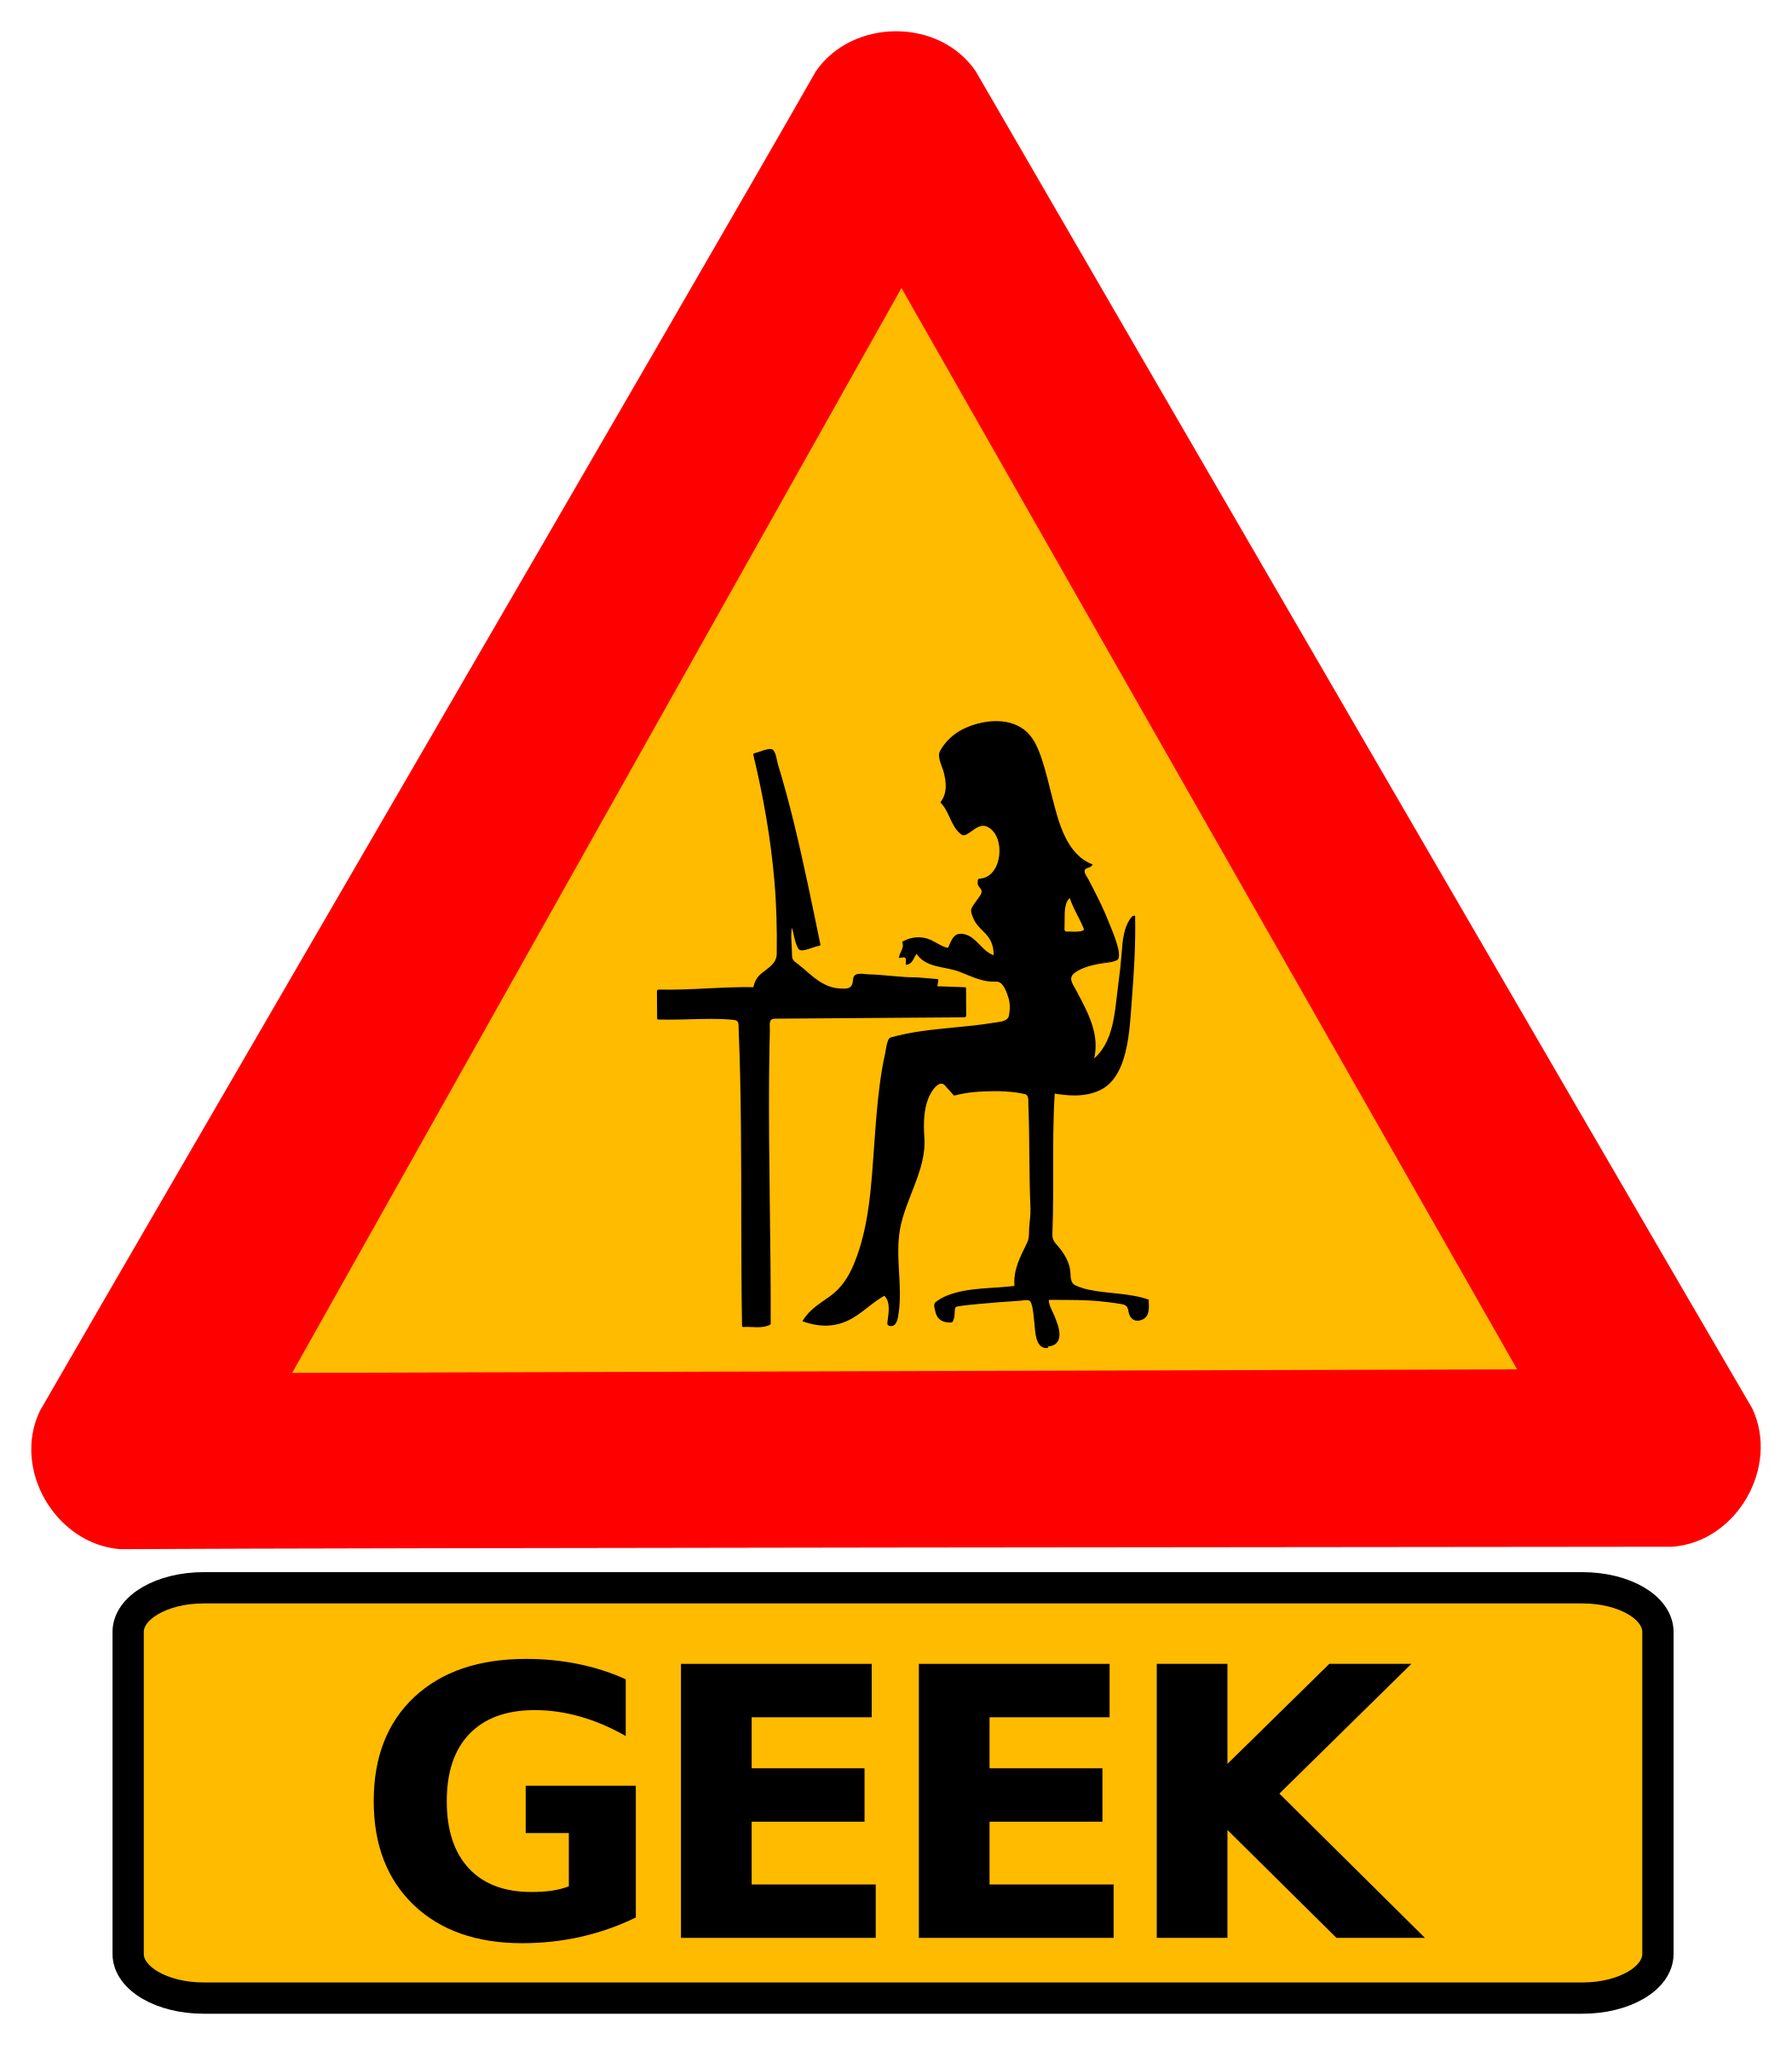 Warning geek woman by dominiquechappard